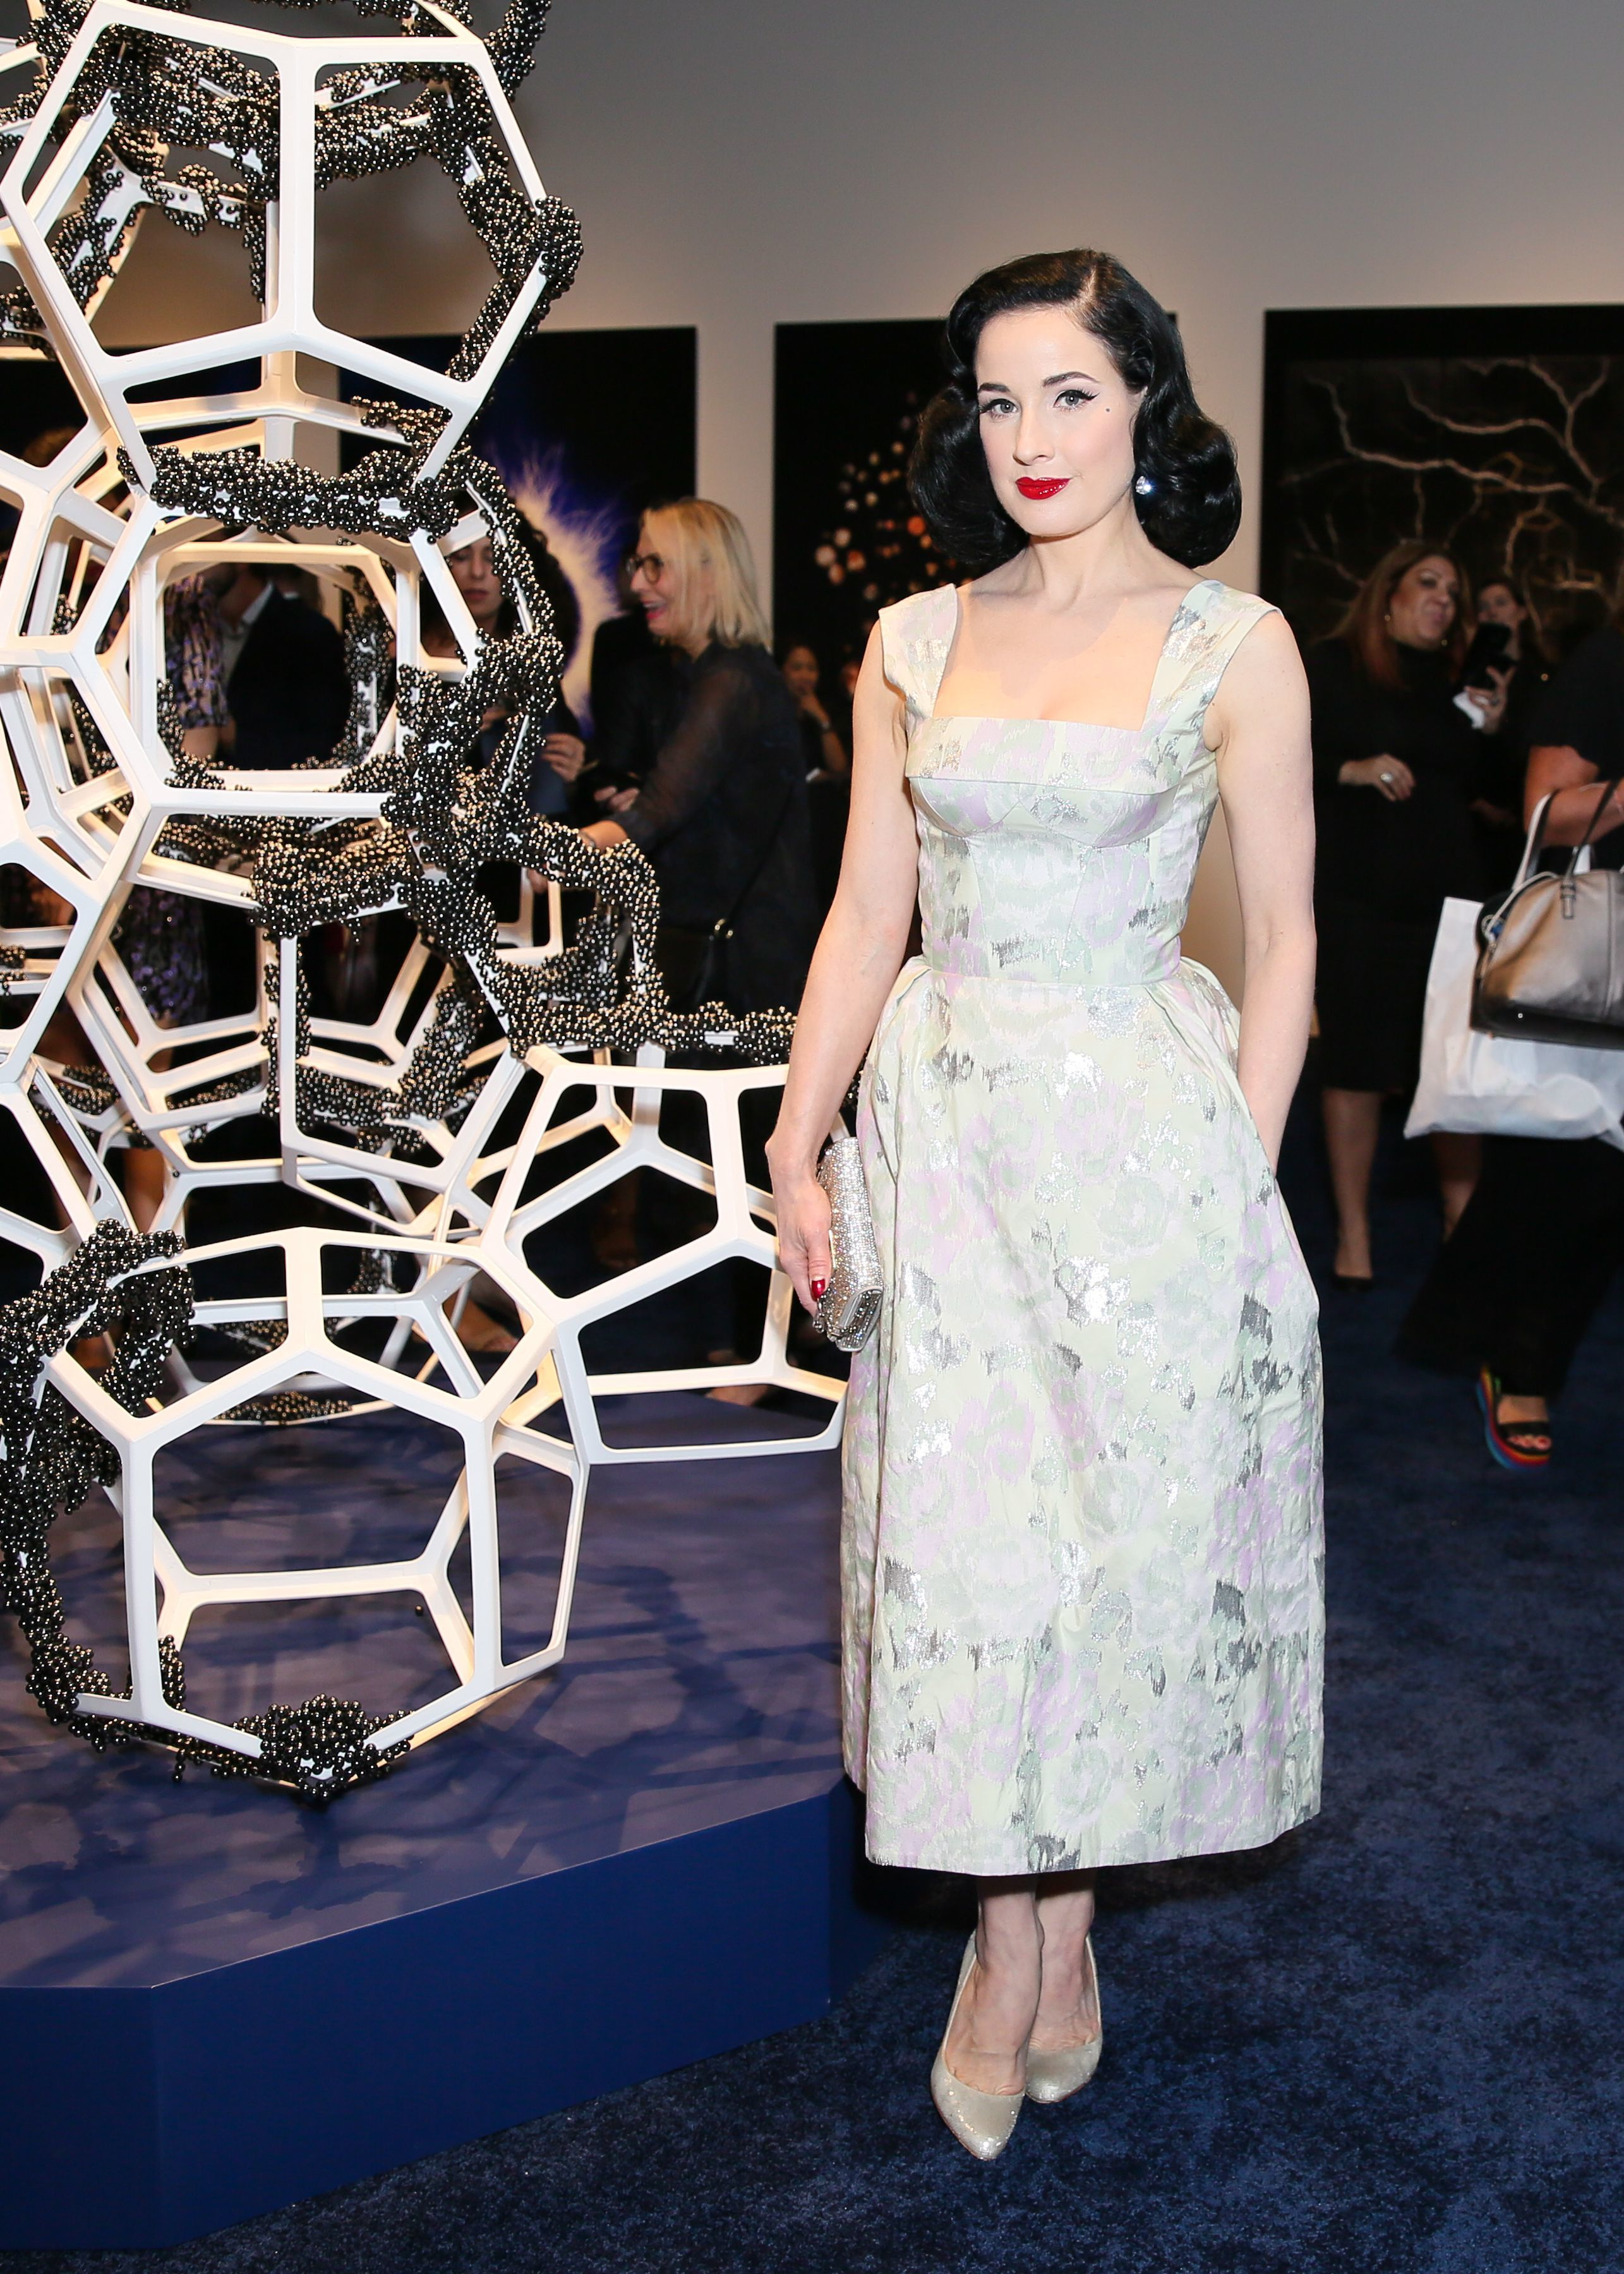 Dita Von Teese attends the La Prairie Presents: The Art of Caviar   Vernissage Evening in New York City on Sept. 6, 2017.